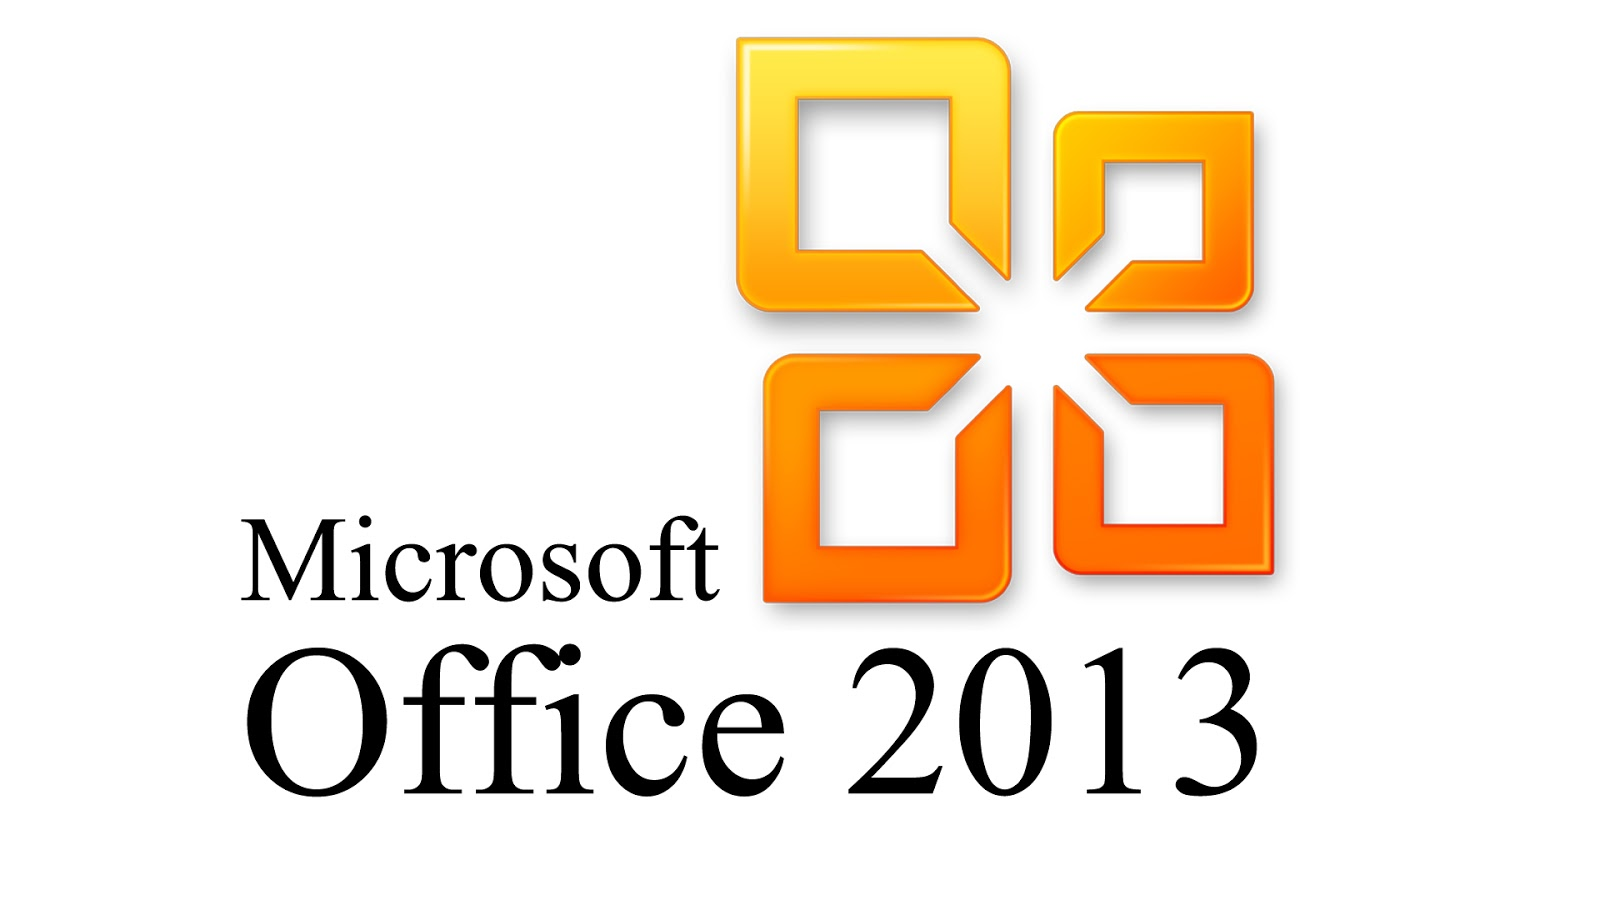 Microsoft Office 2013 (also called Office 2013 and Office 15) is the